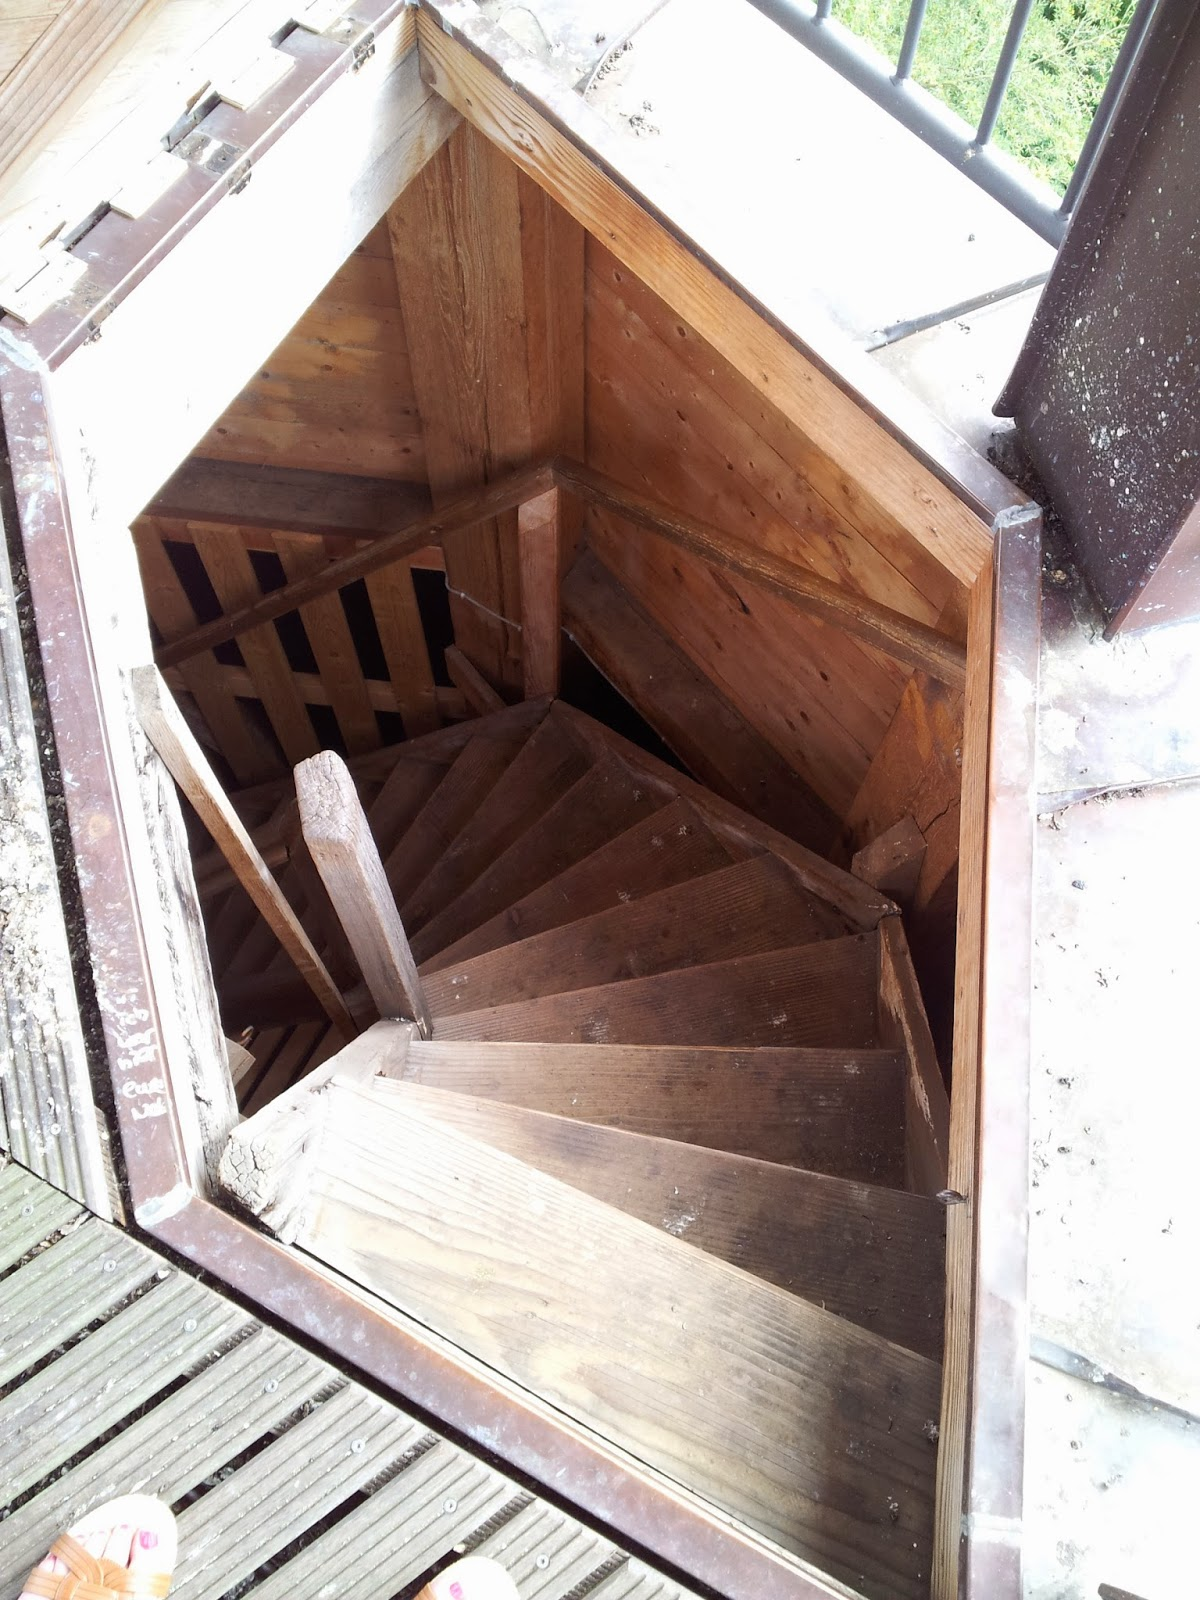 Stairs in Lauenburg castle tower